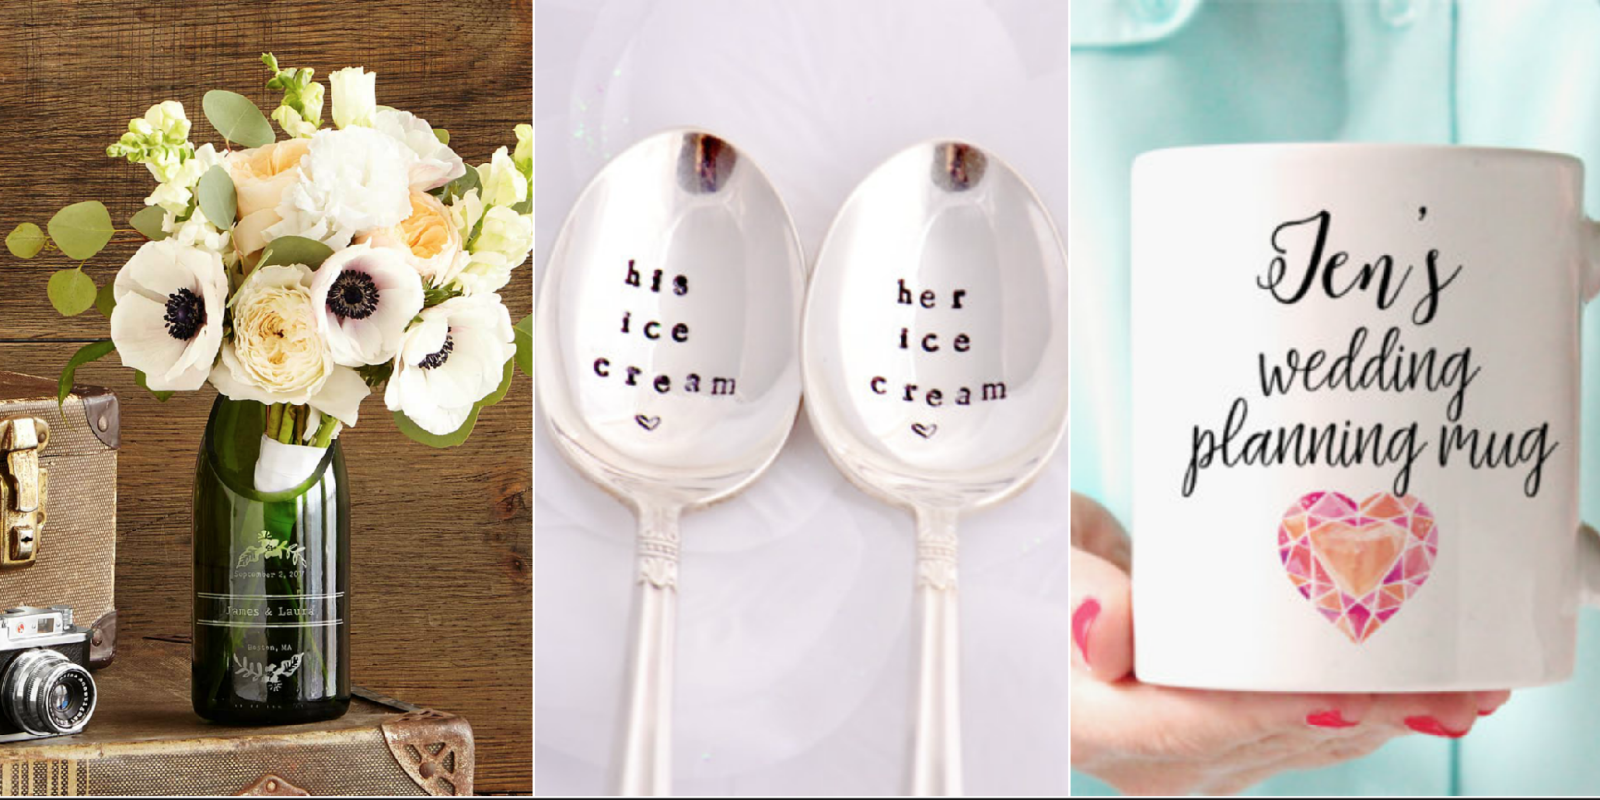 10 Best Bridal Shower Gift Ideas For The Bride -Unique